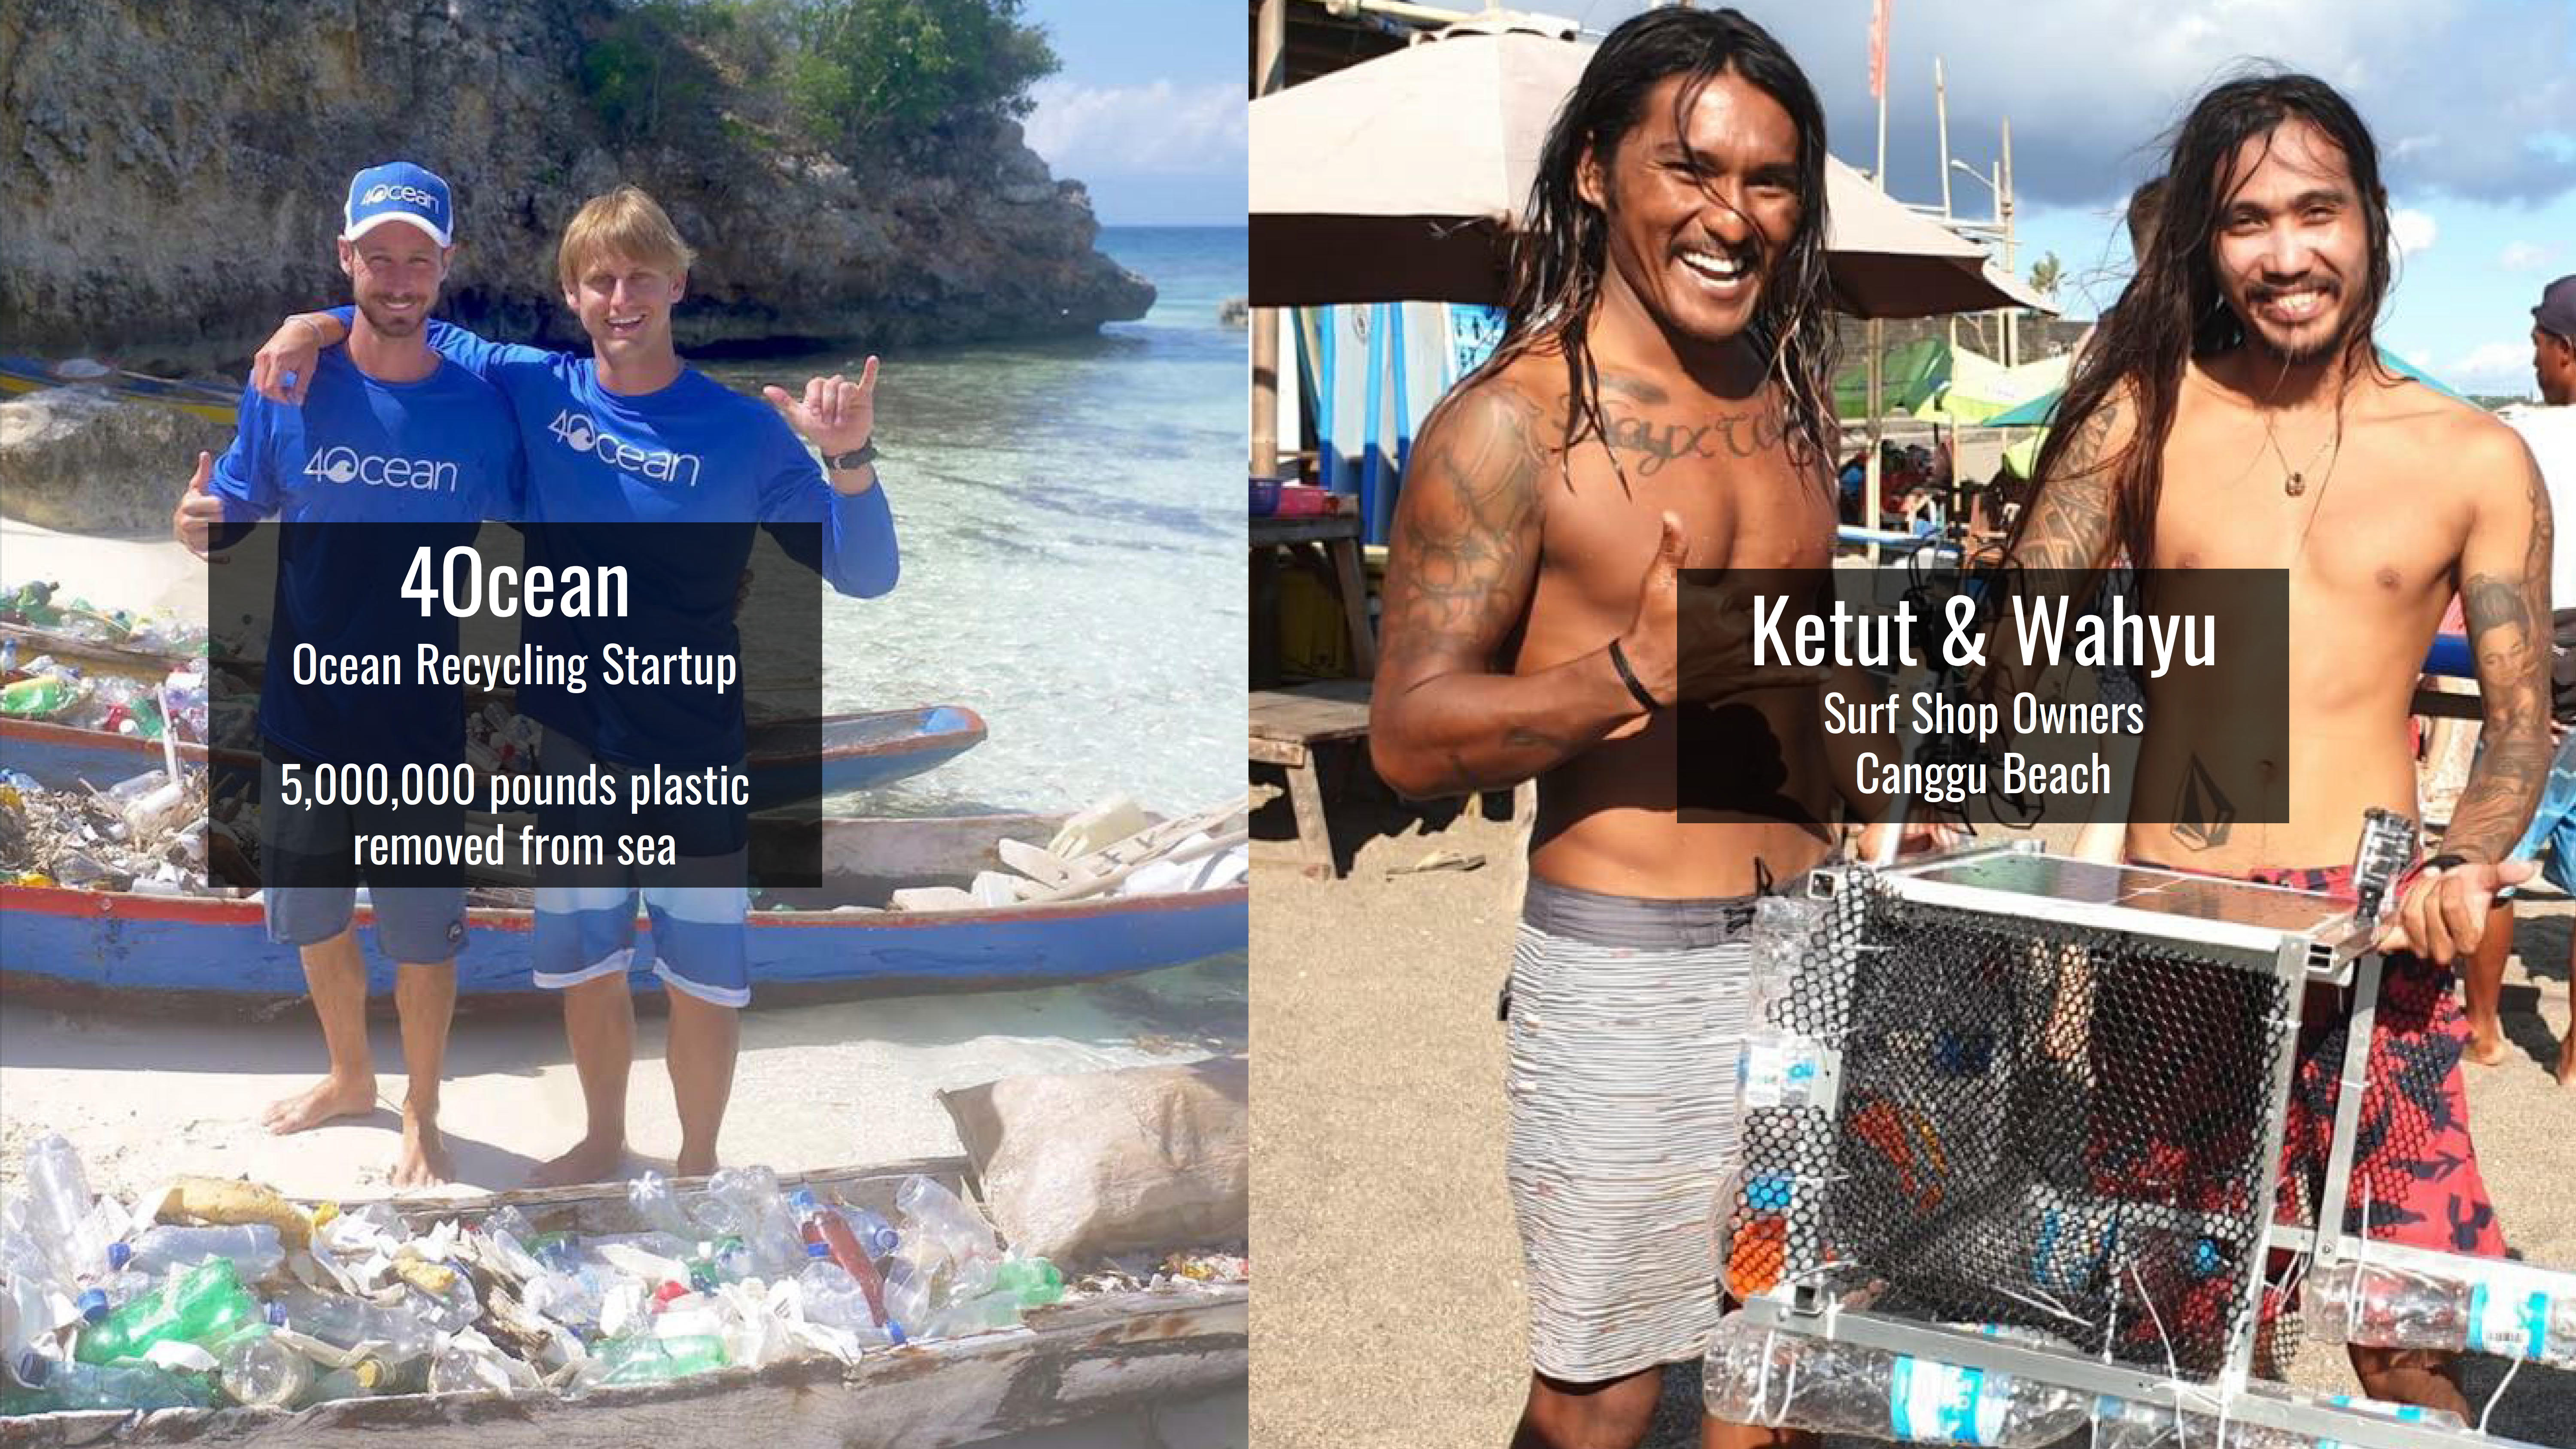 On the left are Alex and Andrew of 4ocean, who have cleaned a mammoth 5 million pounds of ocean plastic in just 2 years. And on the right are Ketut and Wahyu, who belong to the community of volunteers who clean the Canggu beach every morning on their surfboards. Now this burgeoning startup and this indigenous community, both collect ocean waste with small nets and their bare hands. And we felt that ClearBot could really scale up their efforts.